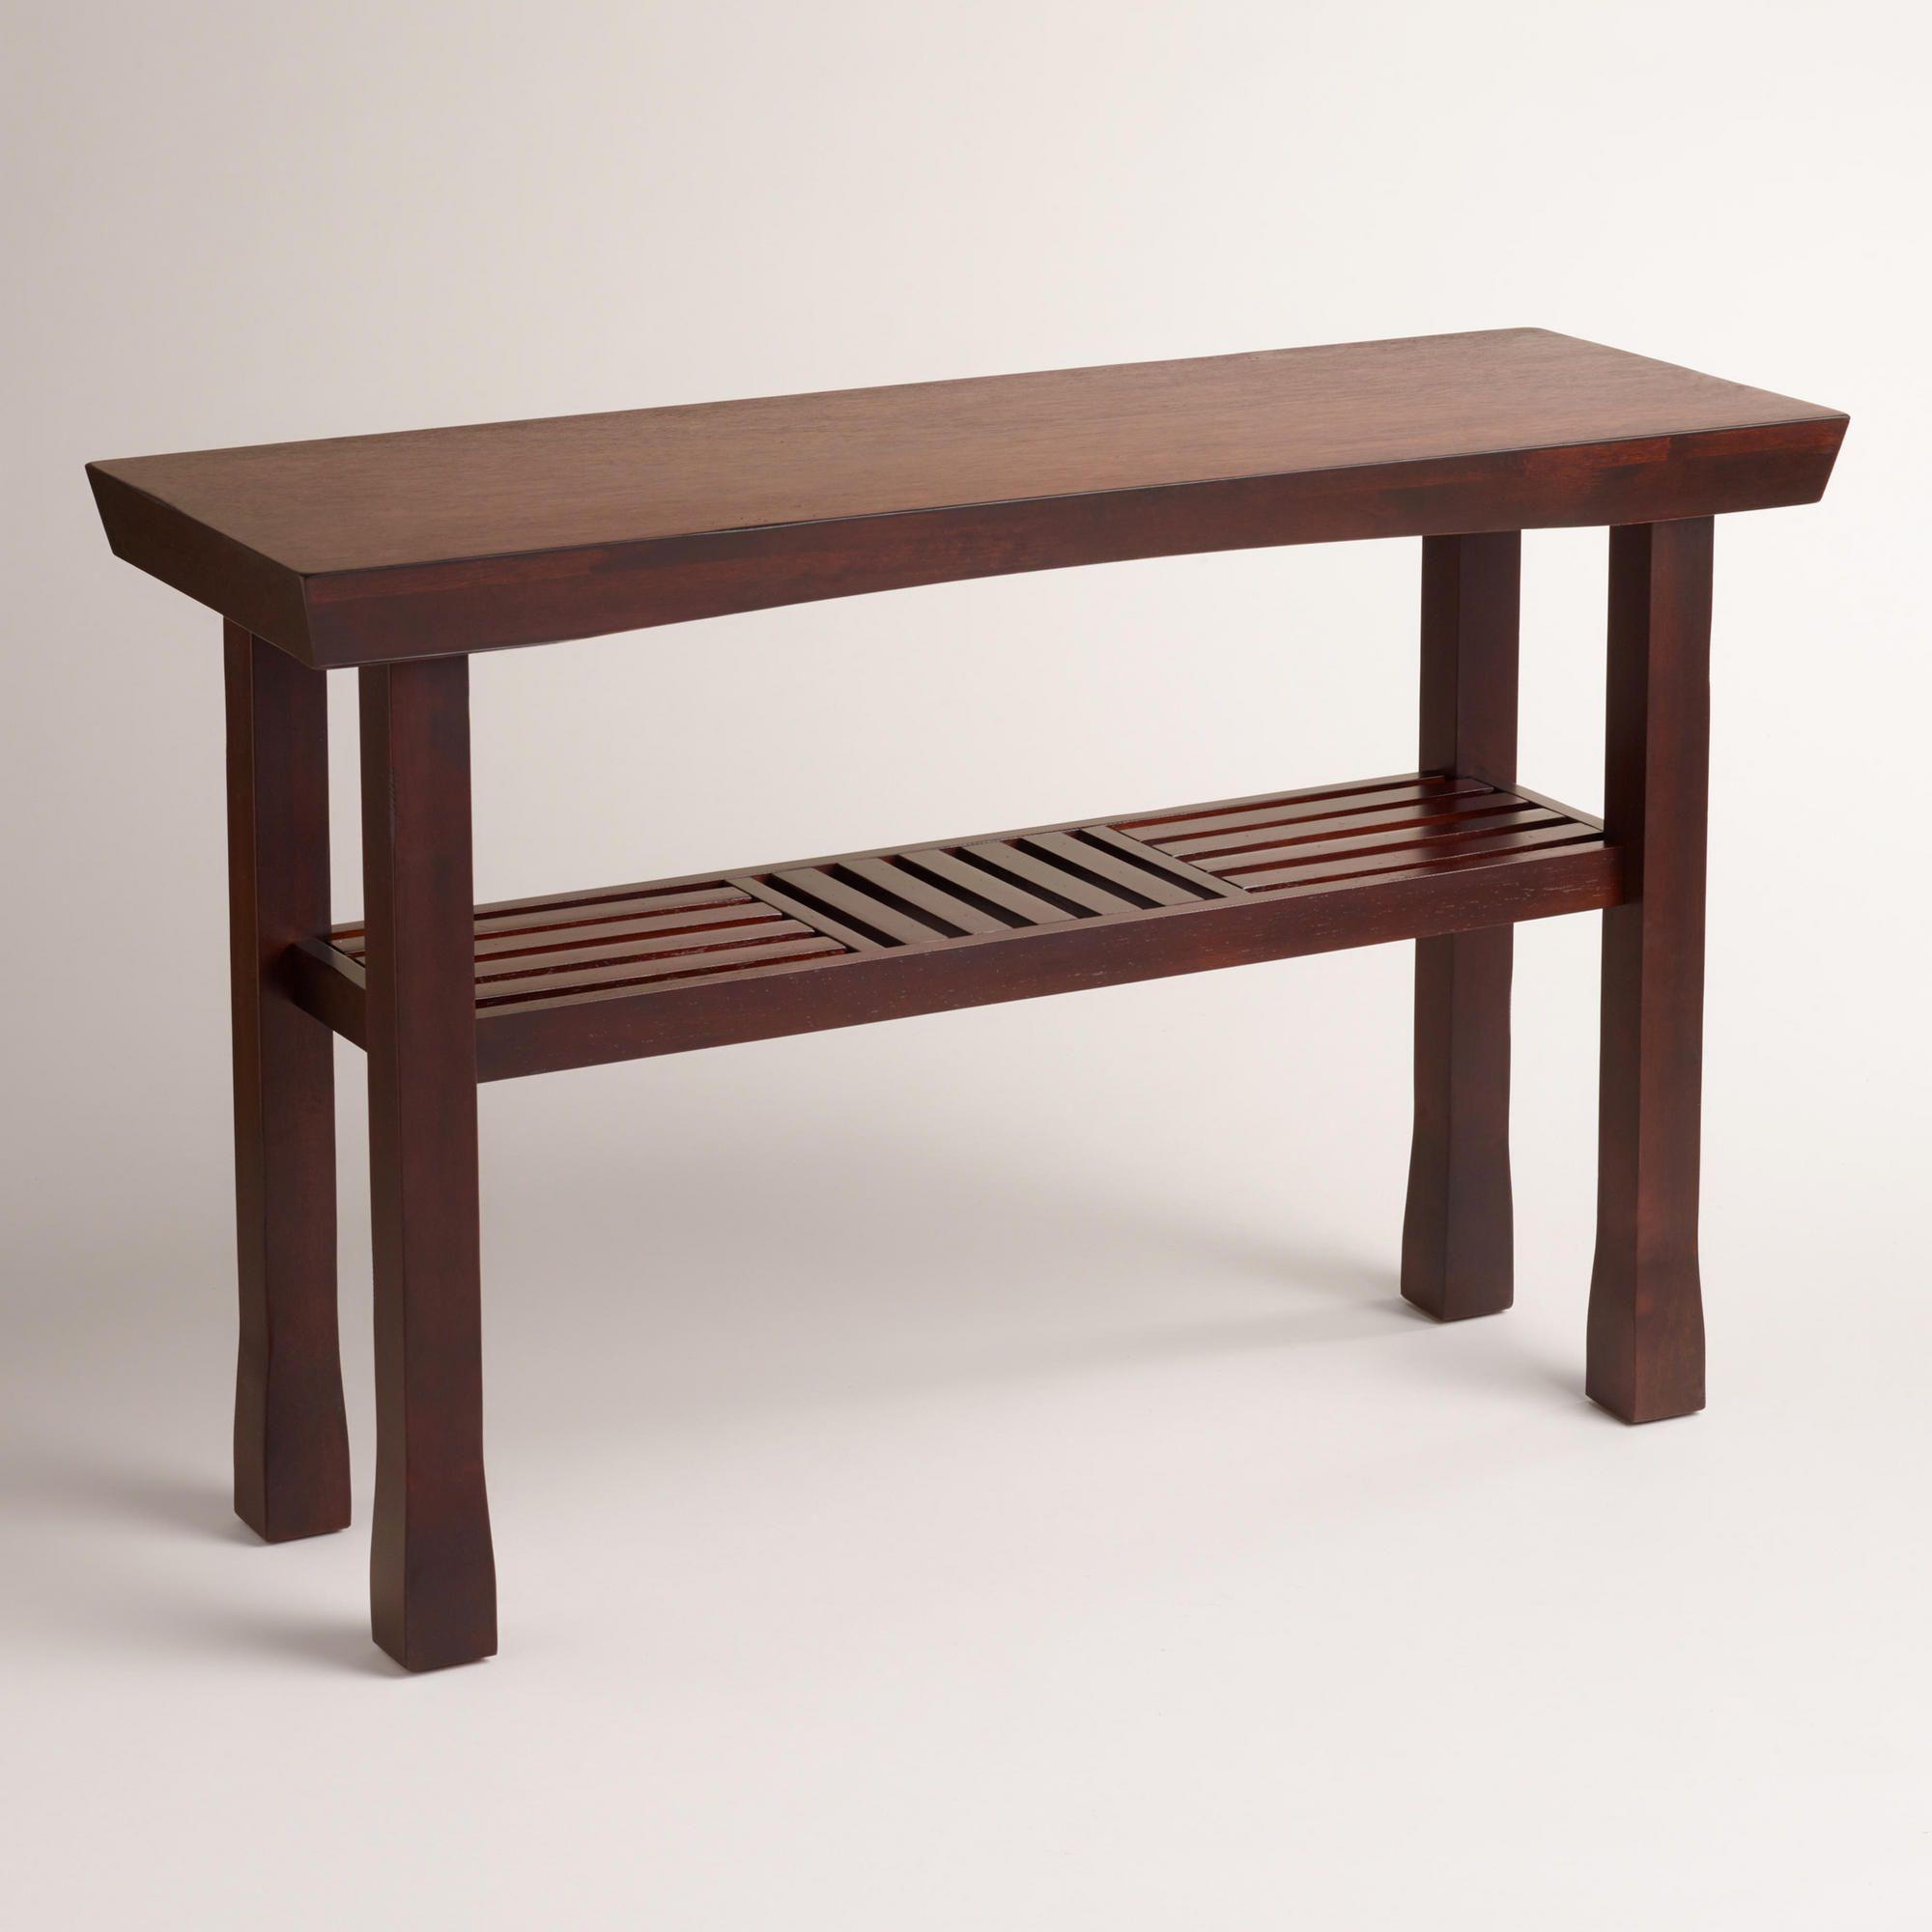 Hako Console Table Outdoor Console Table Sofa Table Console Table